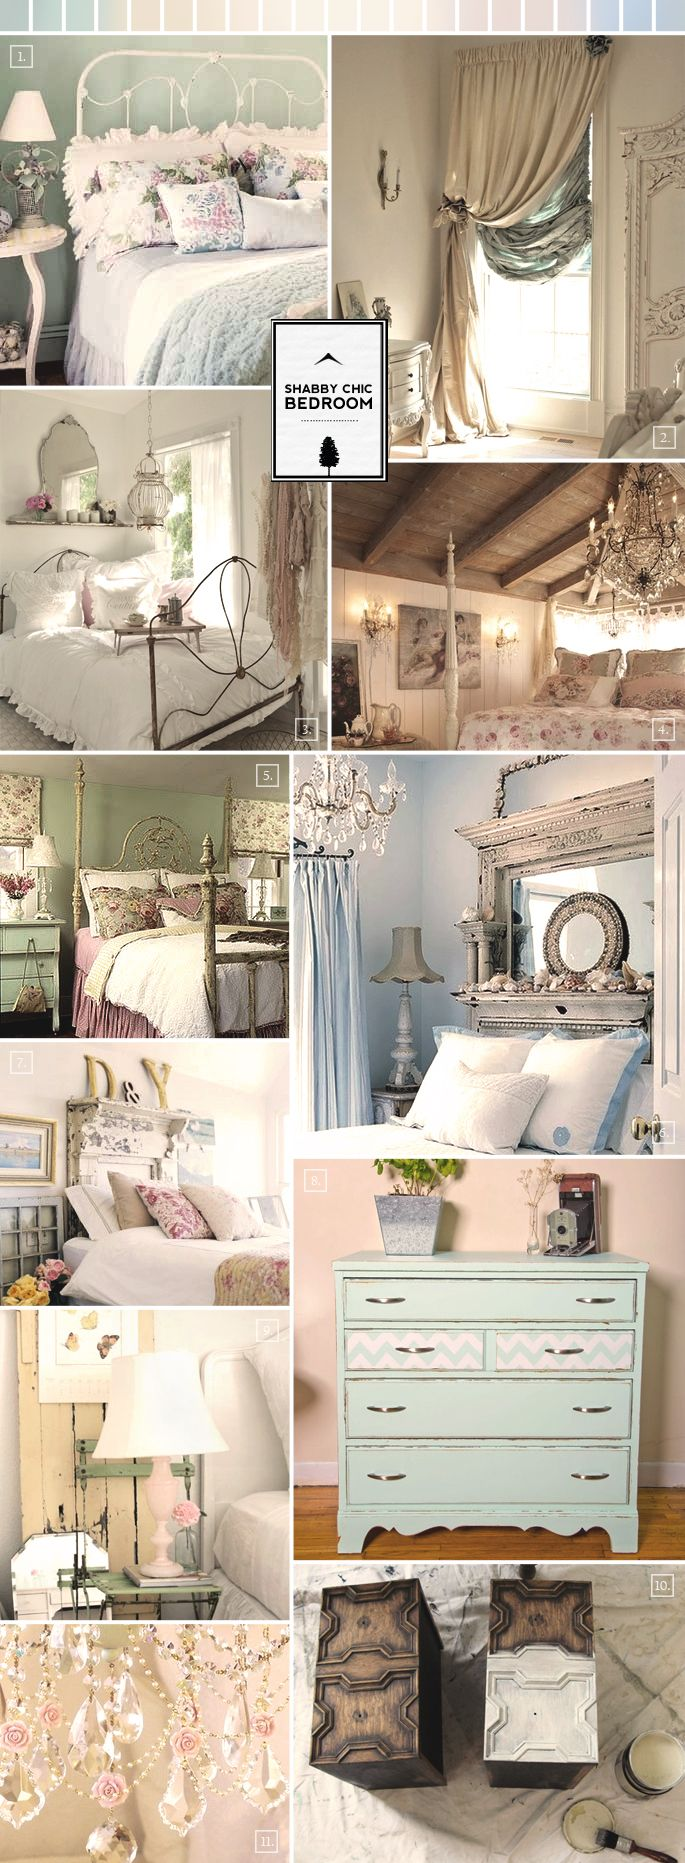 Shabby Chic Bedroom Ideas and Decor Inspiration. Shabby Chic Bedroom Ideas and Decor Inspiration   Shabby chic